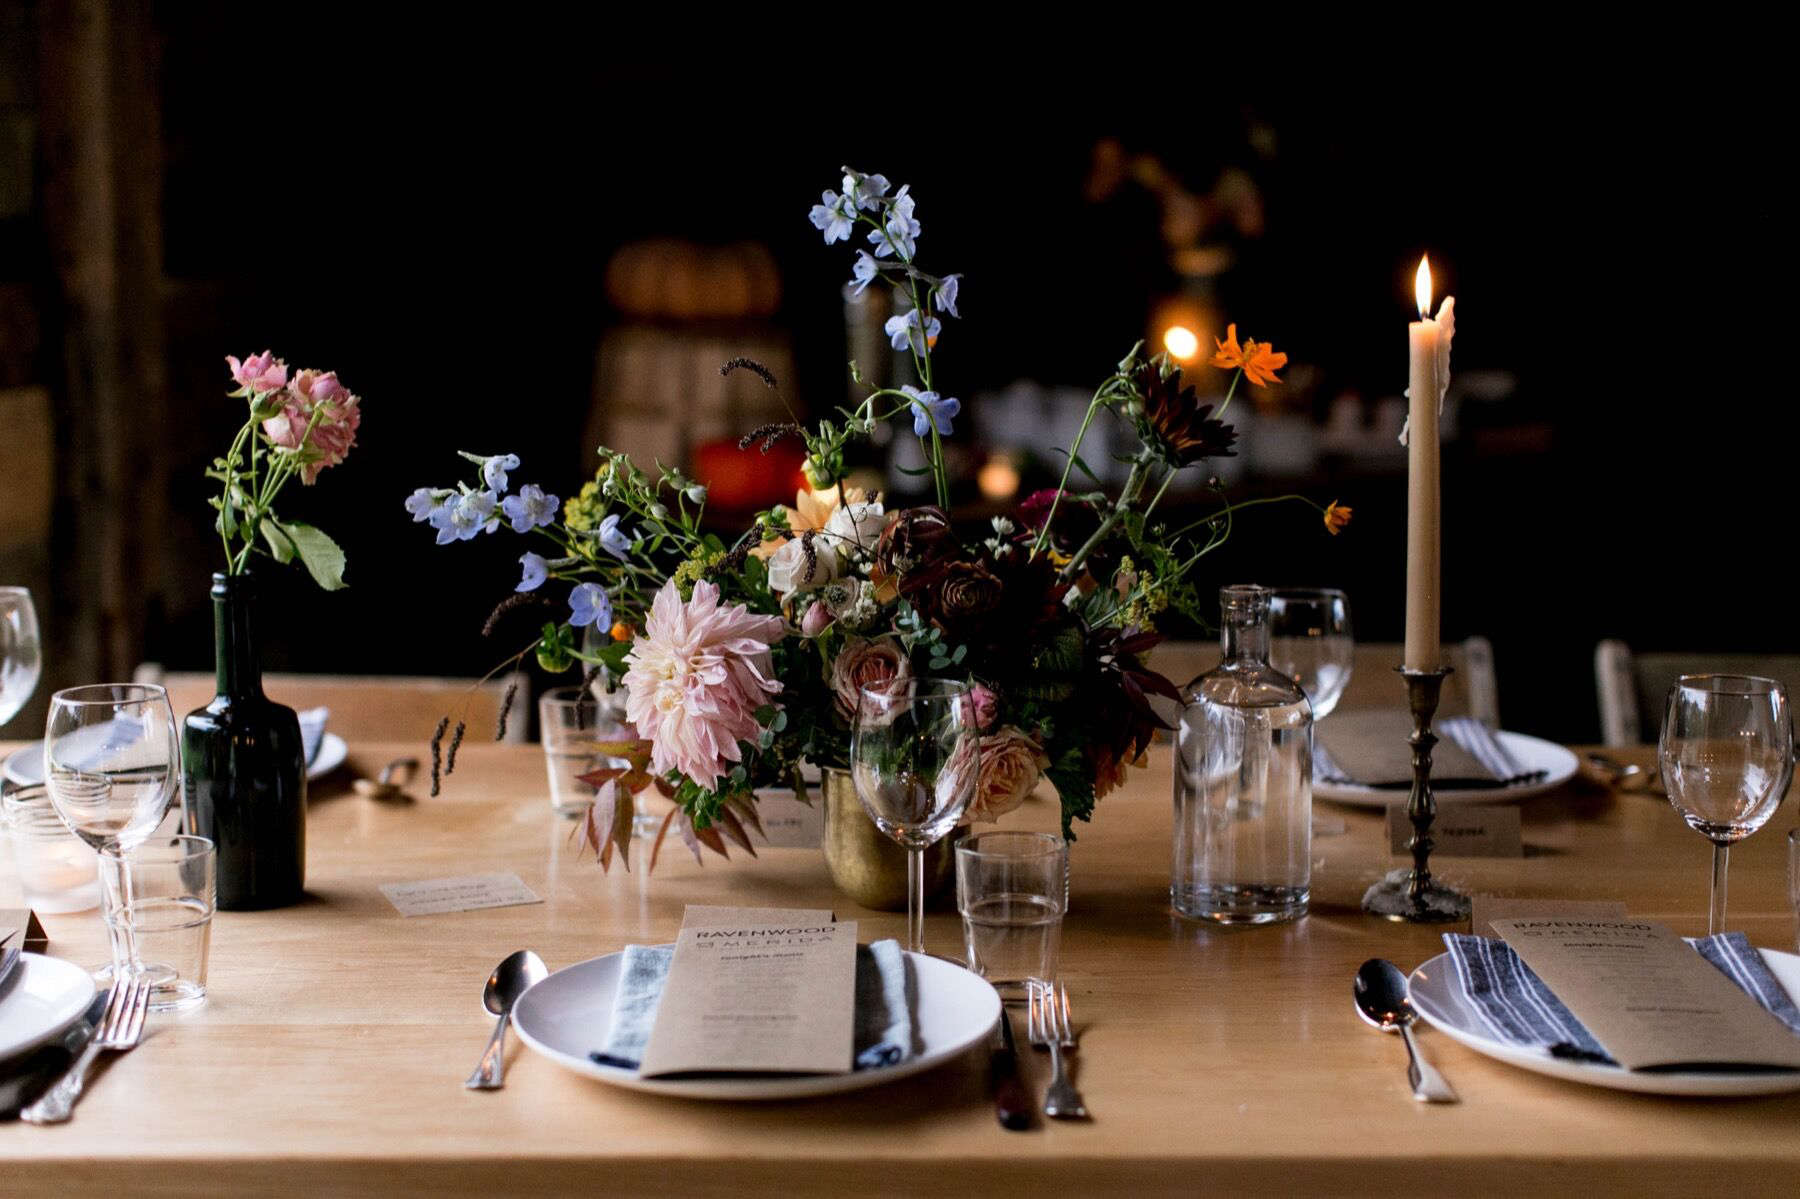 Restaurant table setting ideas - How To Set A Holiday Table The Ravenwood Barn In Upstate Ny A